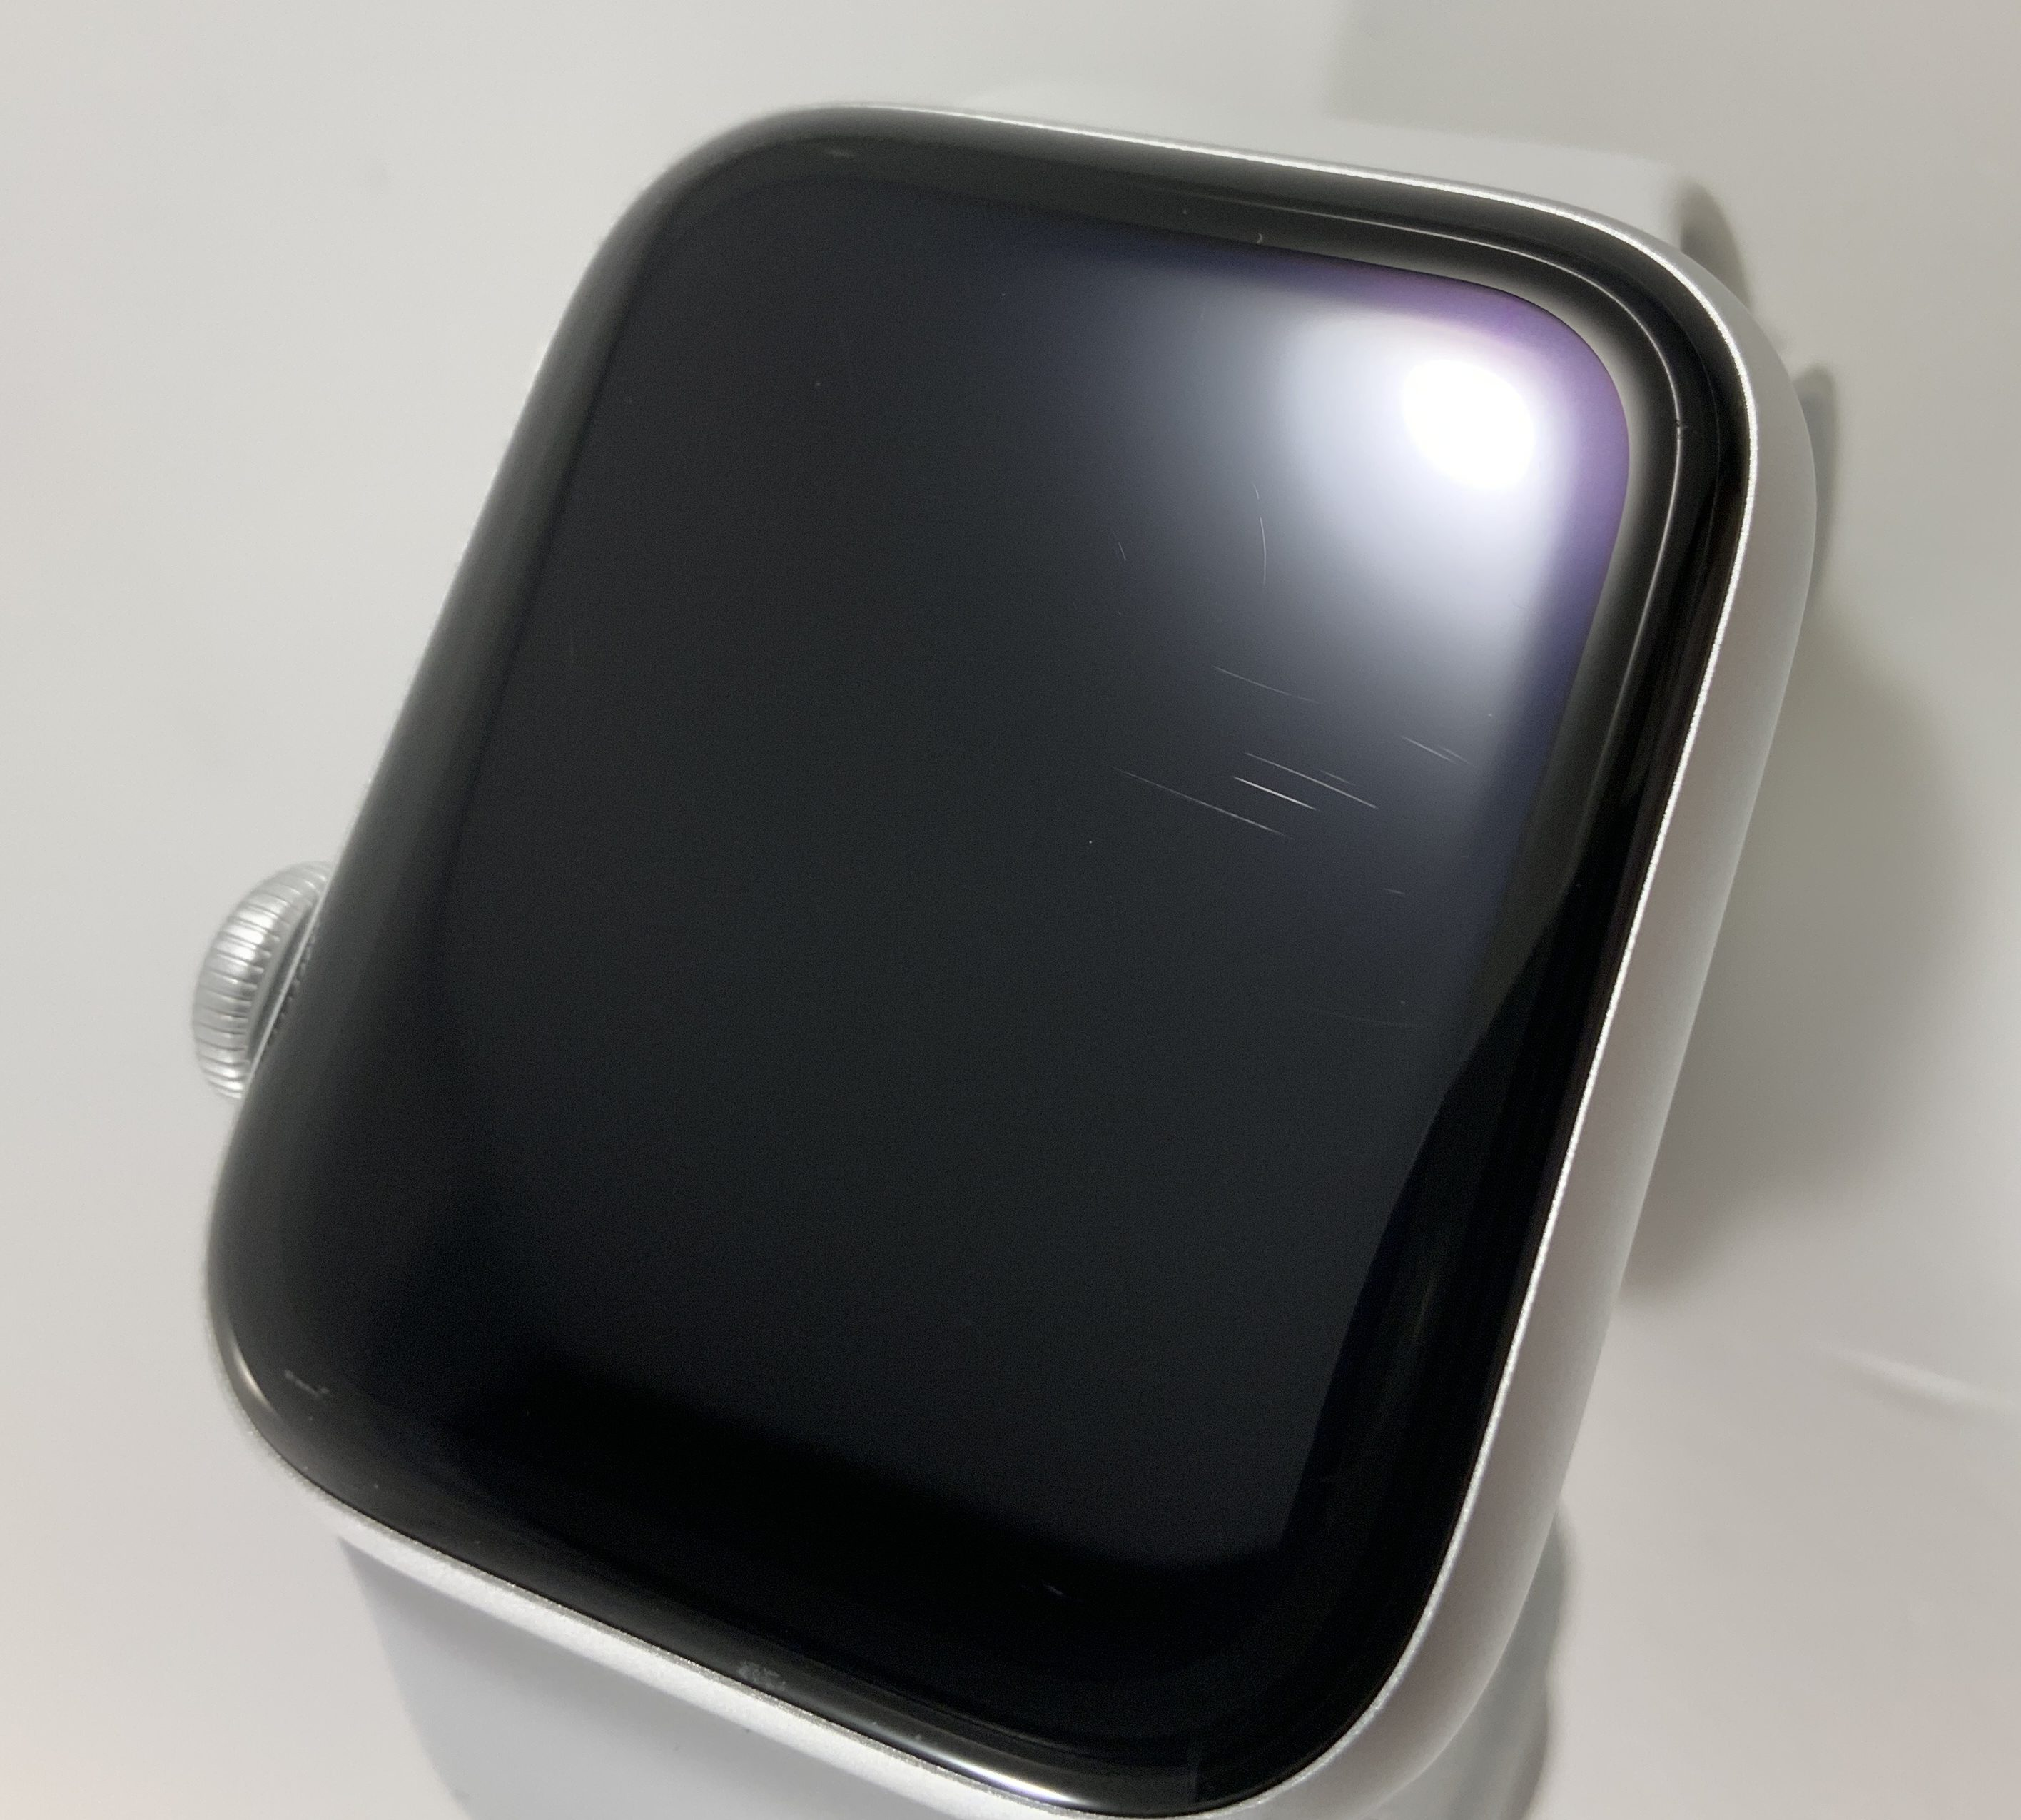 Watch Series 5 Aluminum Cellular (44mm), Silver, image 4